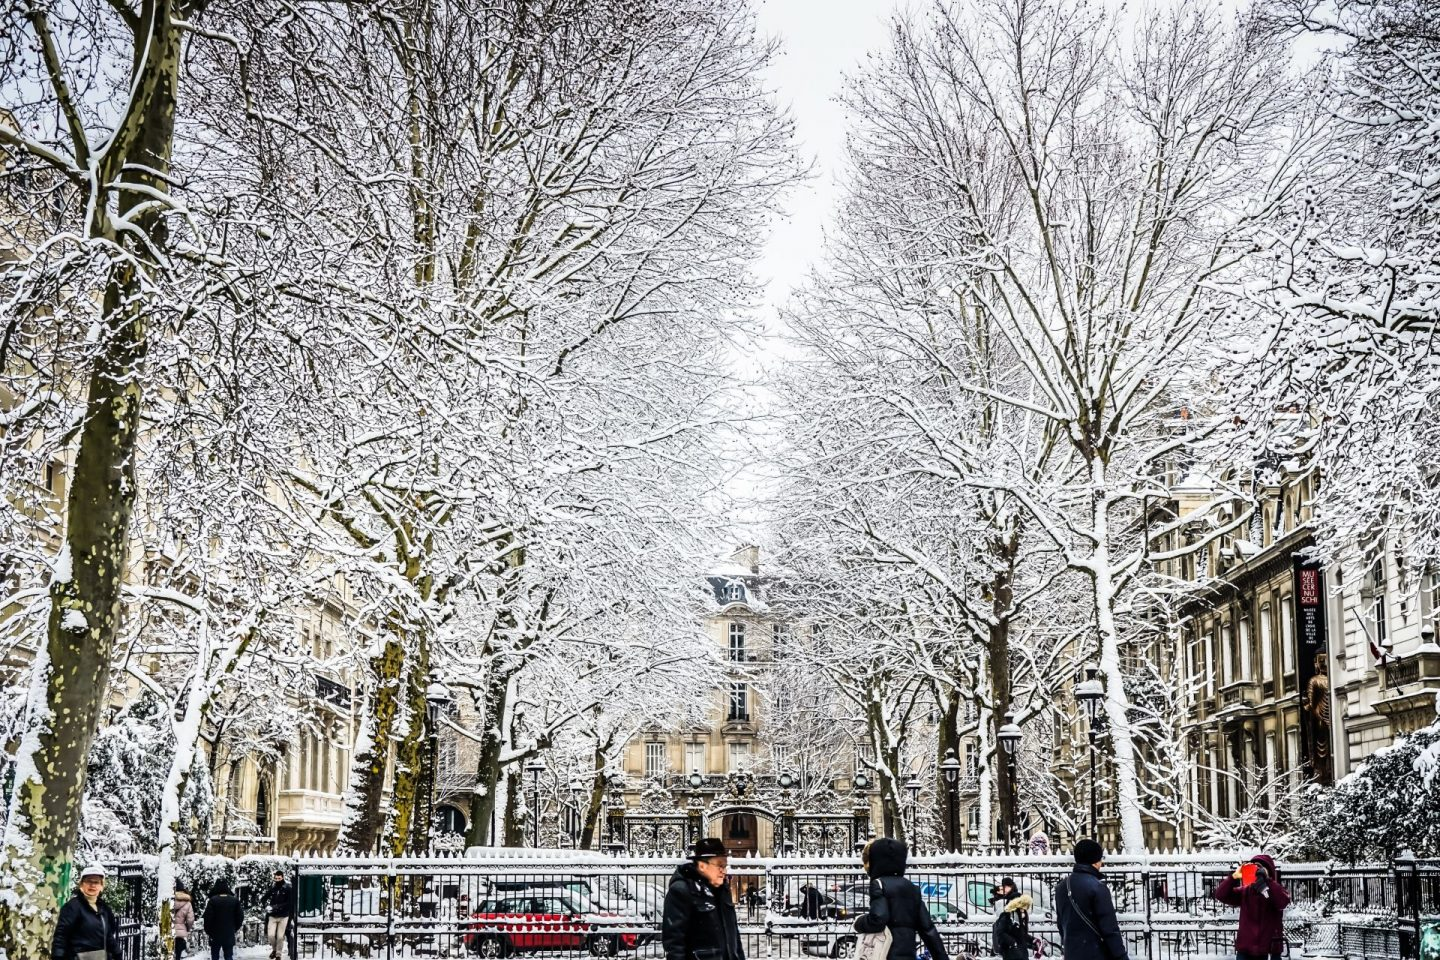 christmas, winter in paris, holiday season, paris, france, going to Paris during Christmas, plans and itinerary for Paris, story time, December talk, travel, wanderlust